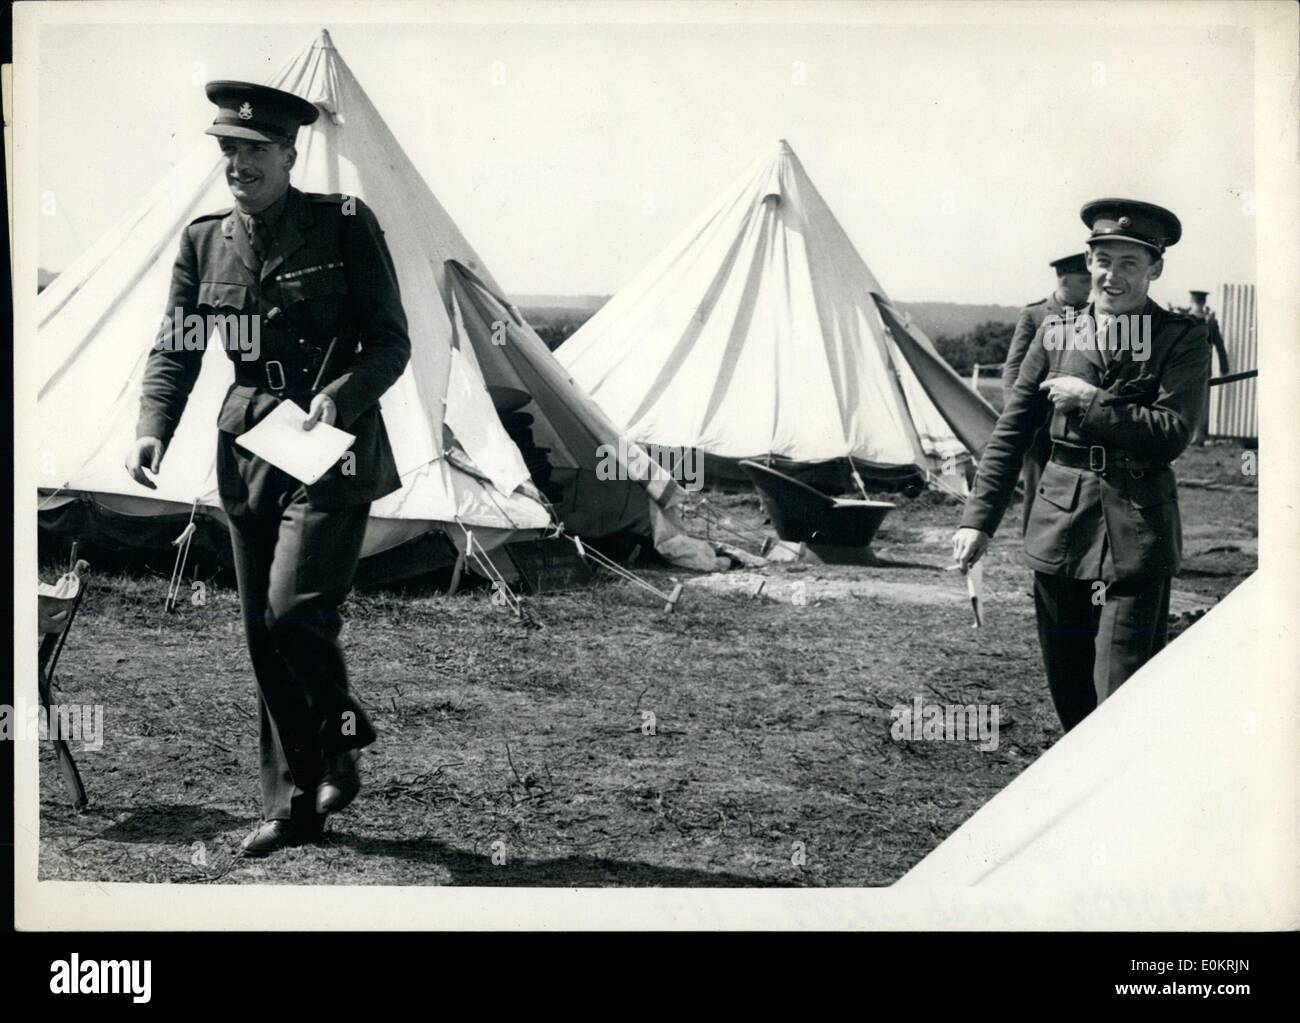 Aug. 08, 1939 - Mr. Anthony Eden in camp at Beuliukeu, Hants: Photo shows Mr.Anthony Eden photographed walking past tent at Beaulien camp, hunts, near the New Forest with the  Rangers. King's royal Rifle Corps, or which he is second-in- - Stock Image